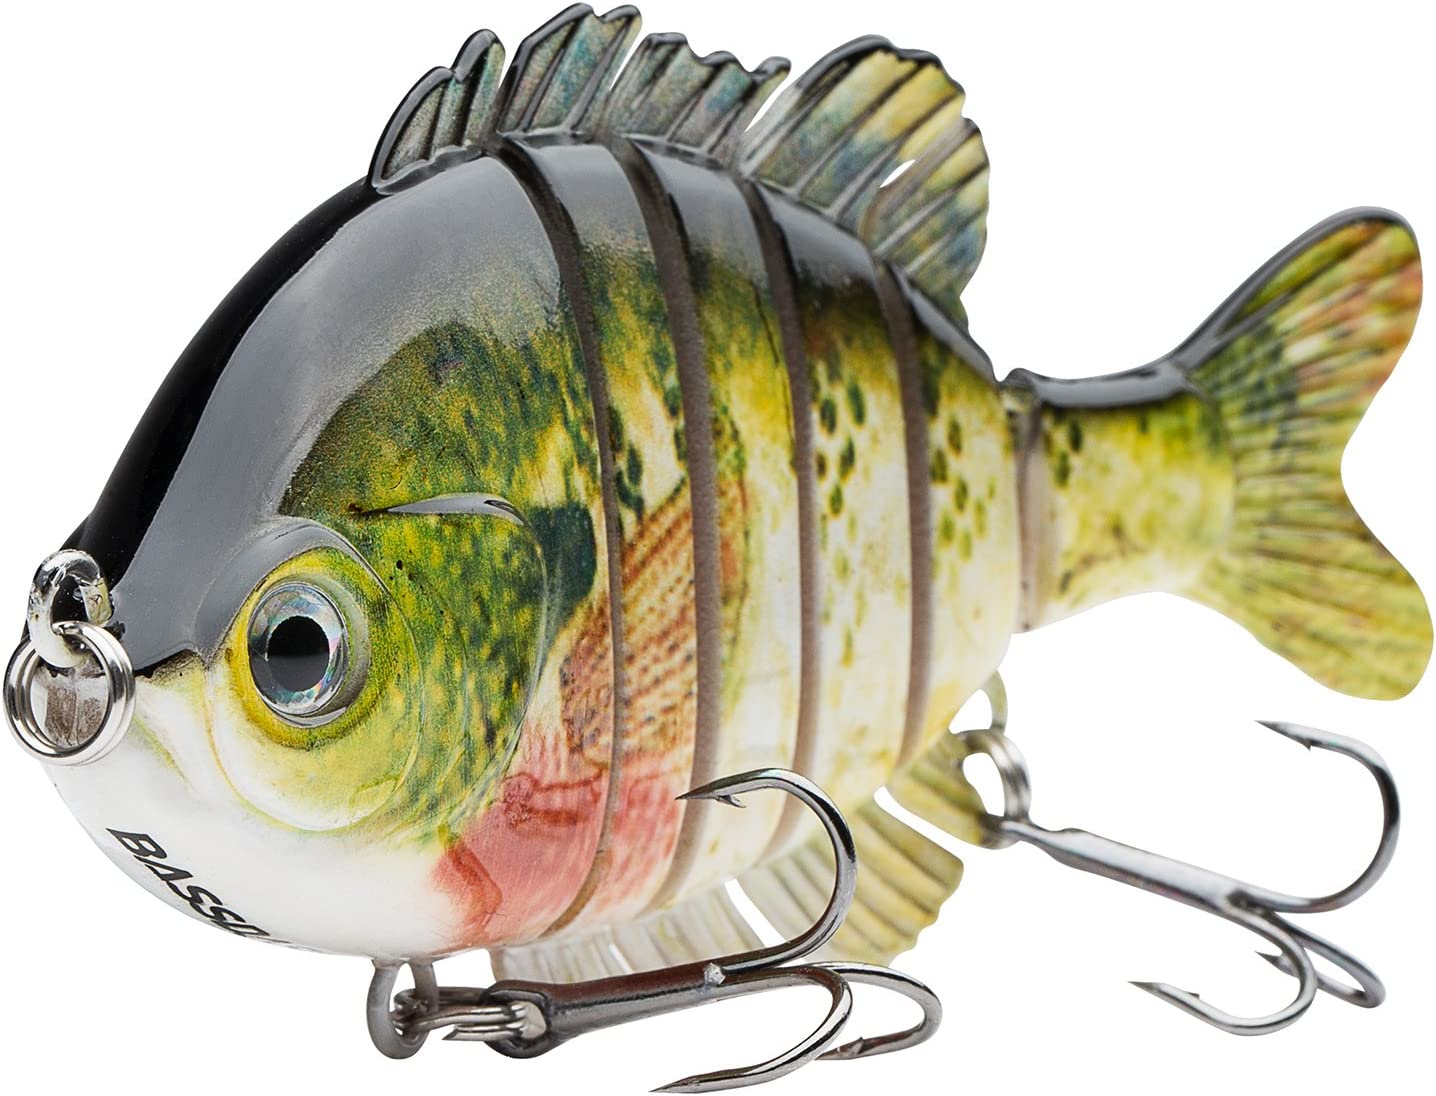 Bassdash SwimPanfish Multi Jointed Panfish Bluegill Swimbaits Hard Topwater Bass Lures Fishing Lure Crank Saltwater 3.5in/0.85oz